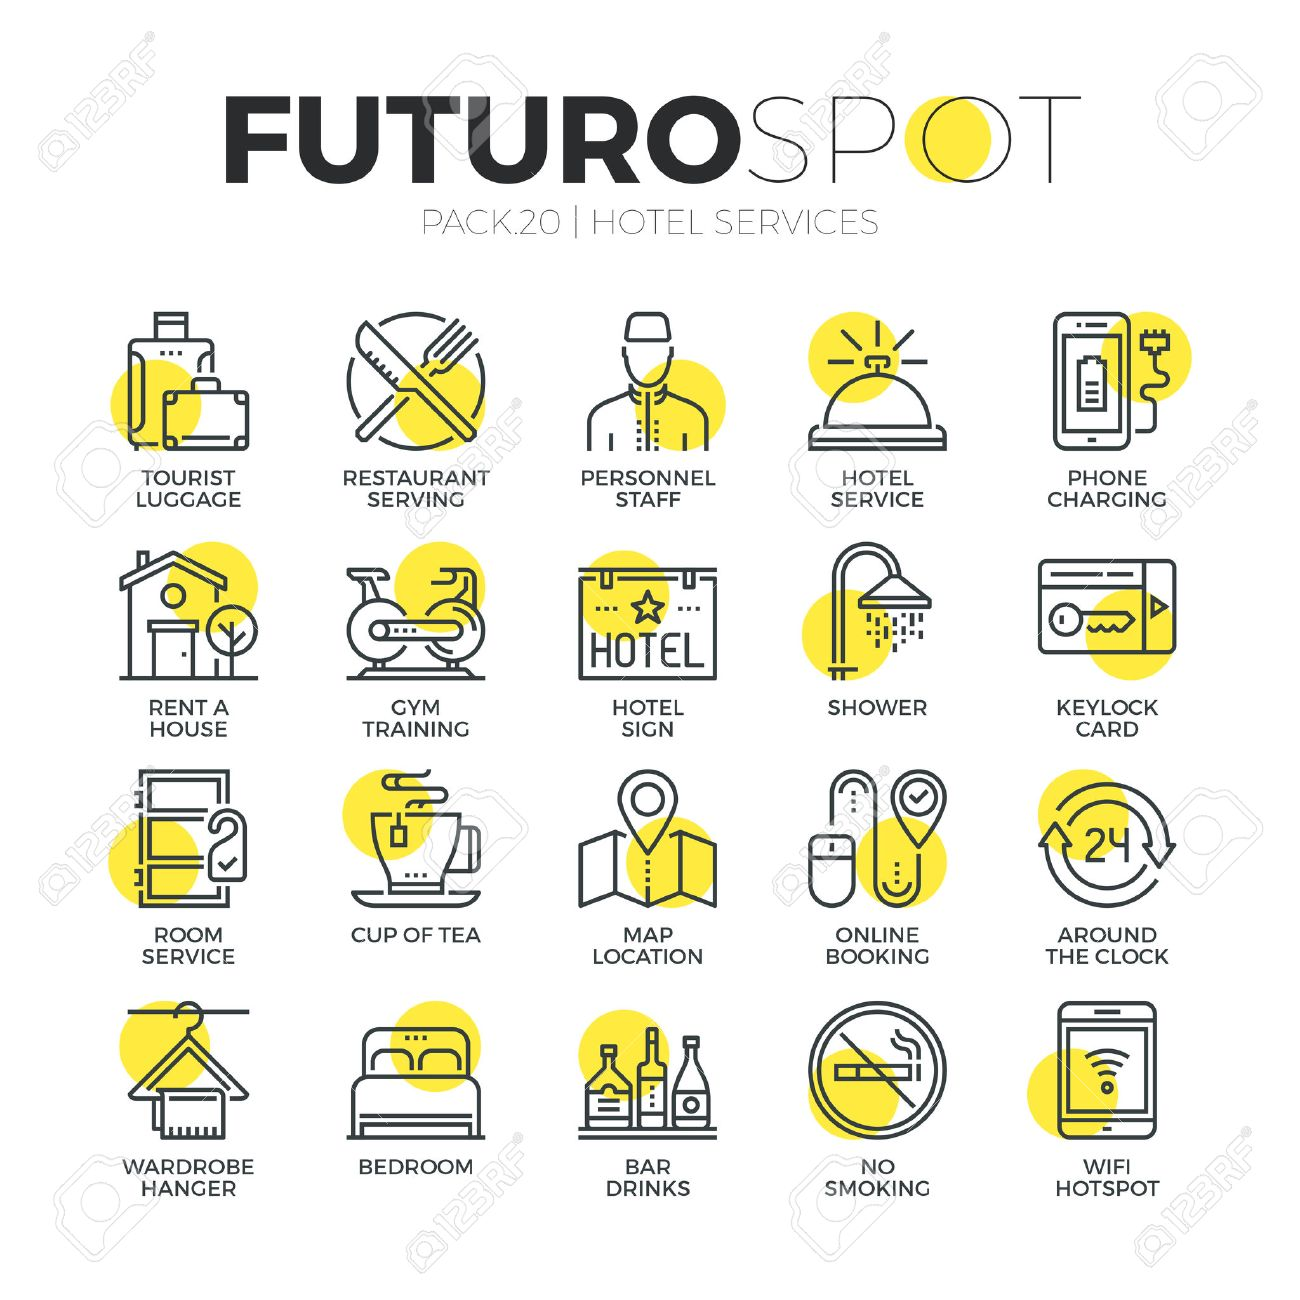 Stroke Line Icons Set Of Hotel Accommodation Services House Amenities Modern Flat Linear Pictogram